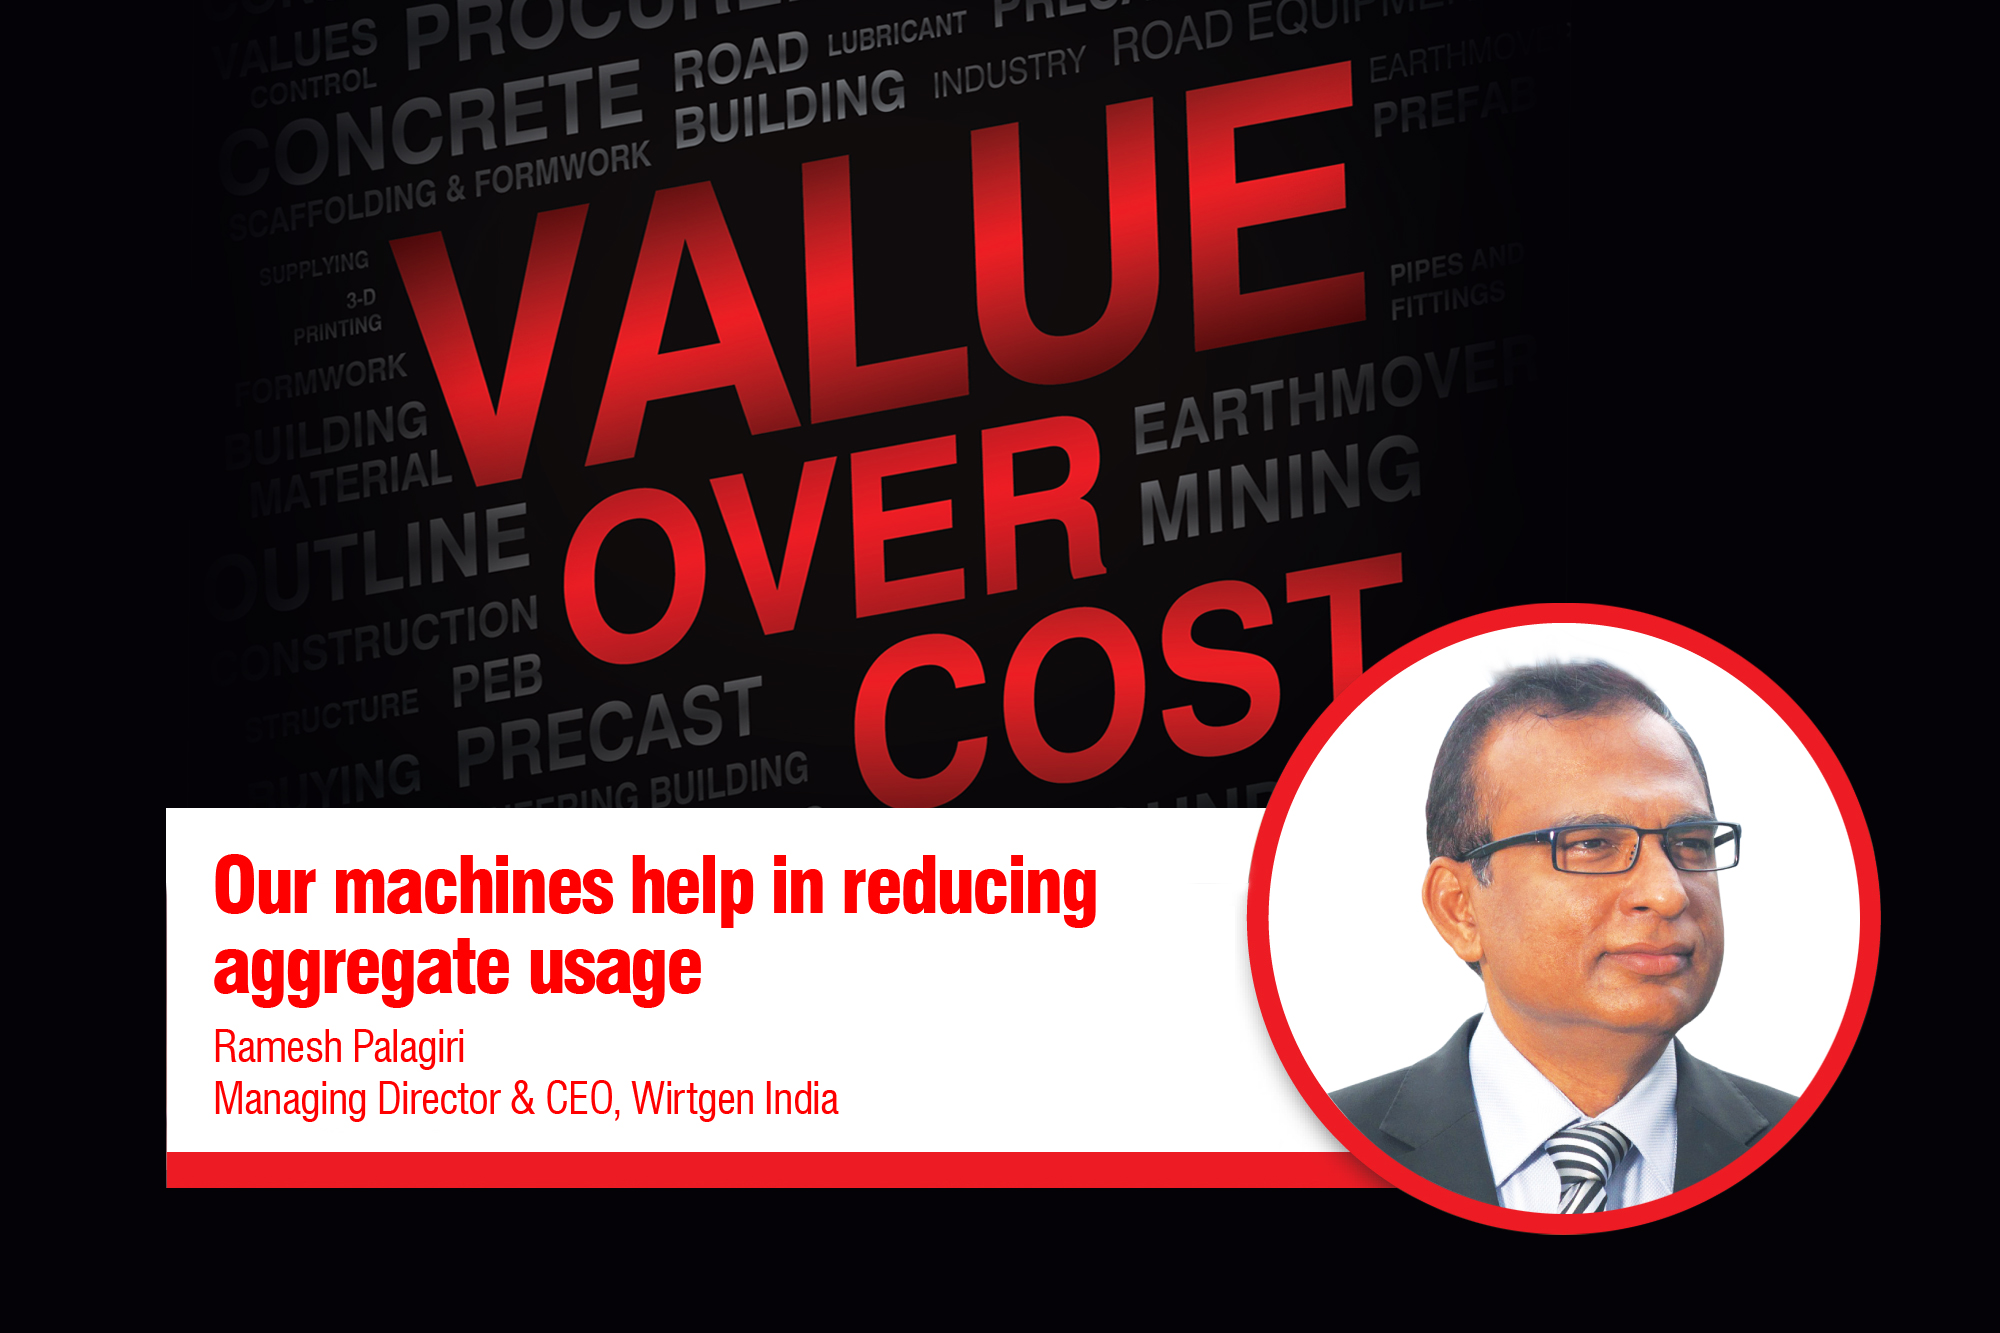 Our machines help in reducing aggregate usage